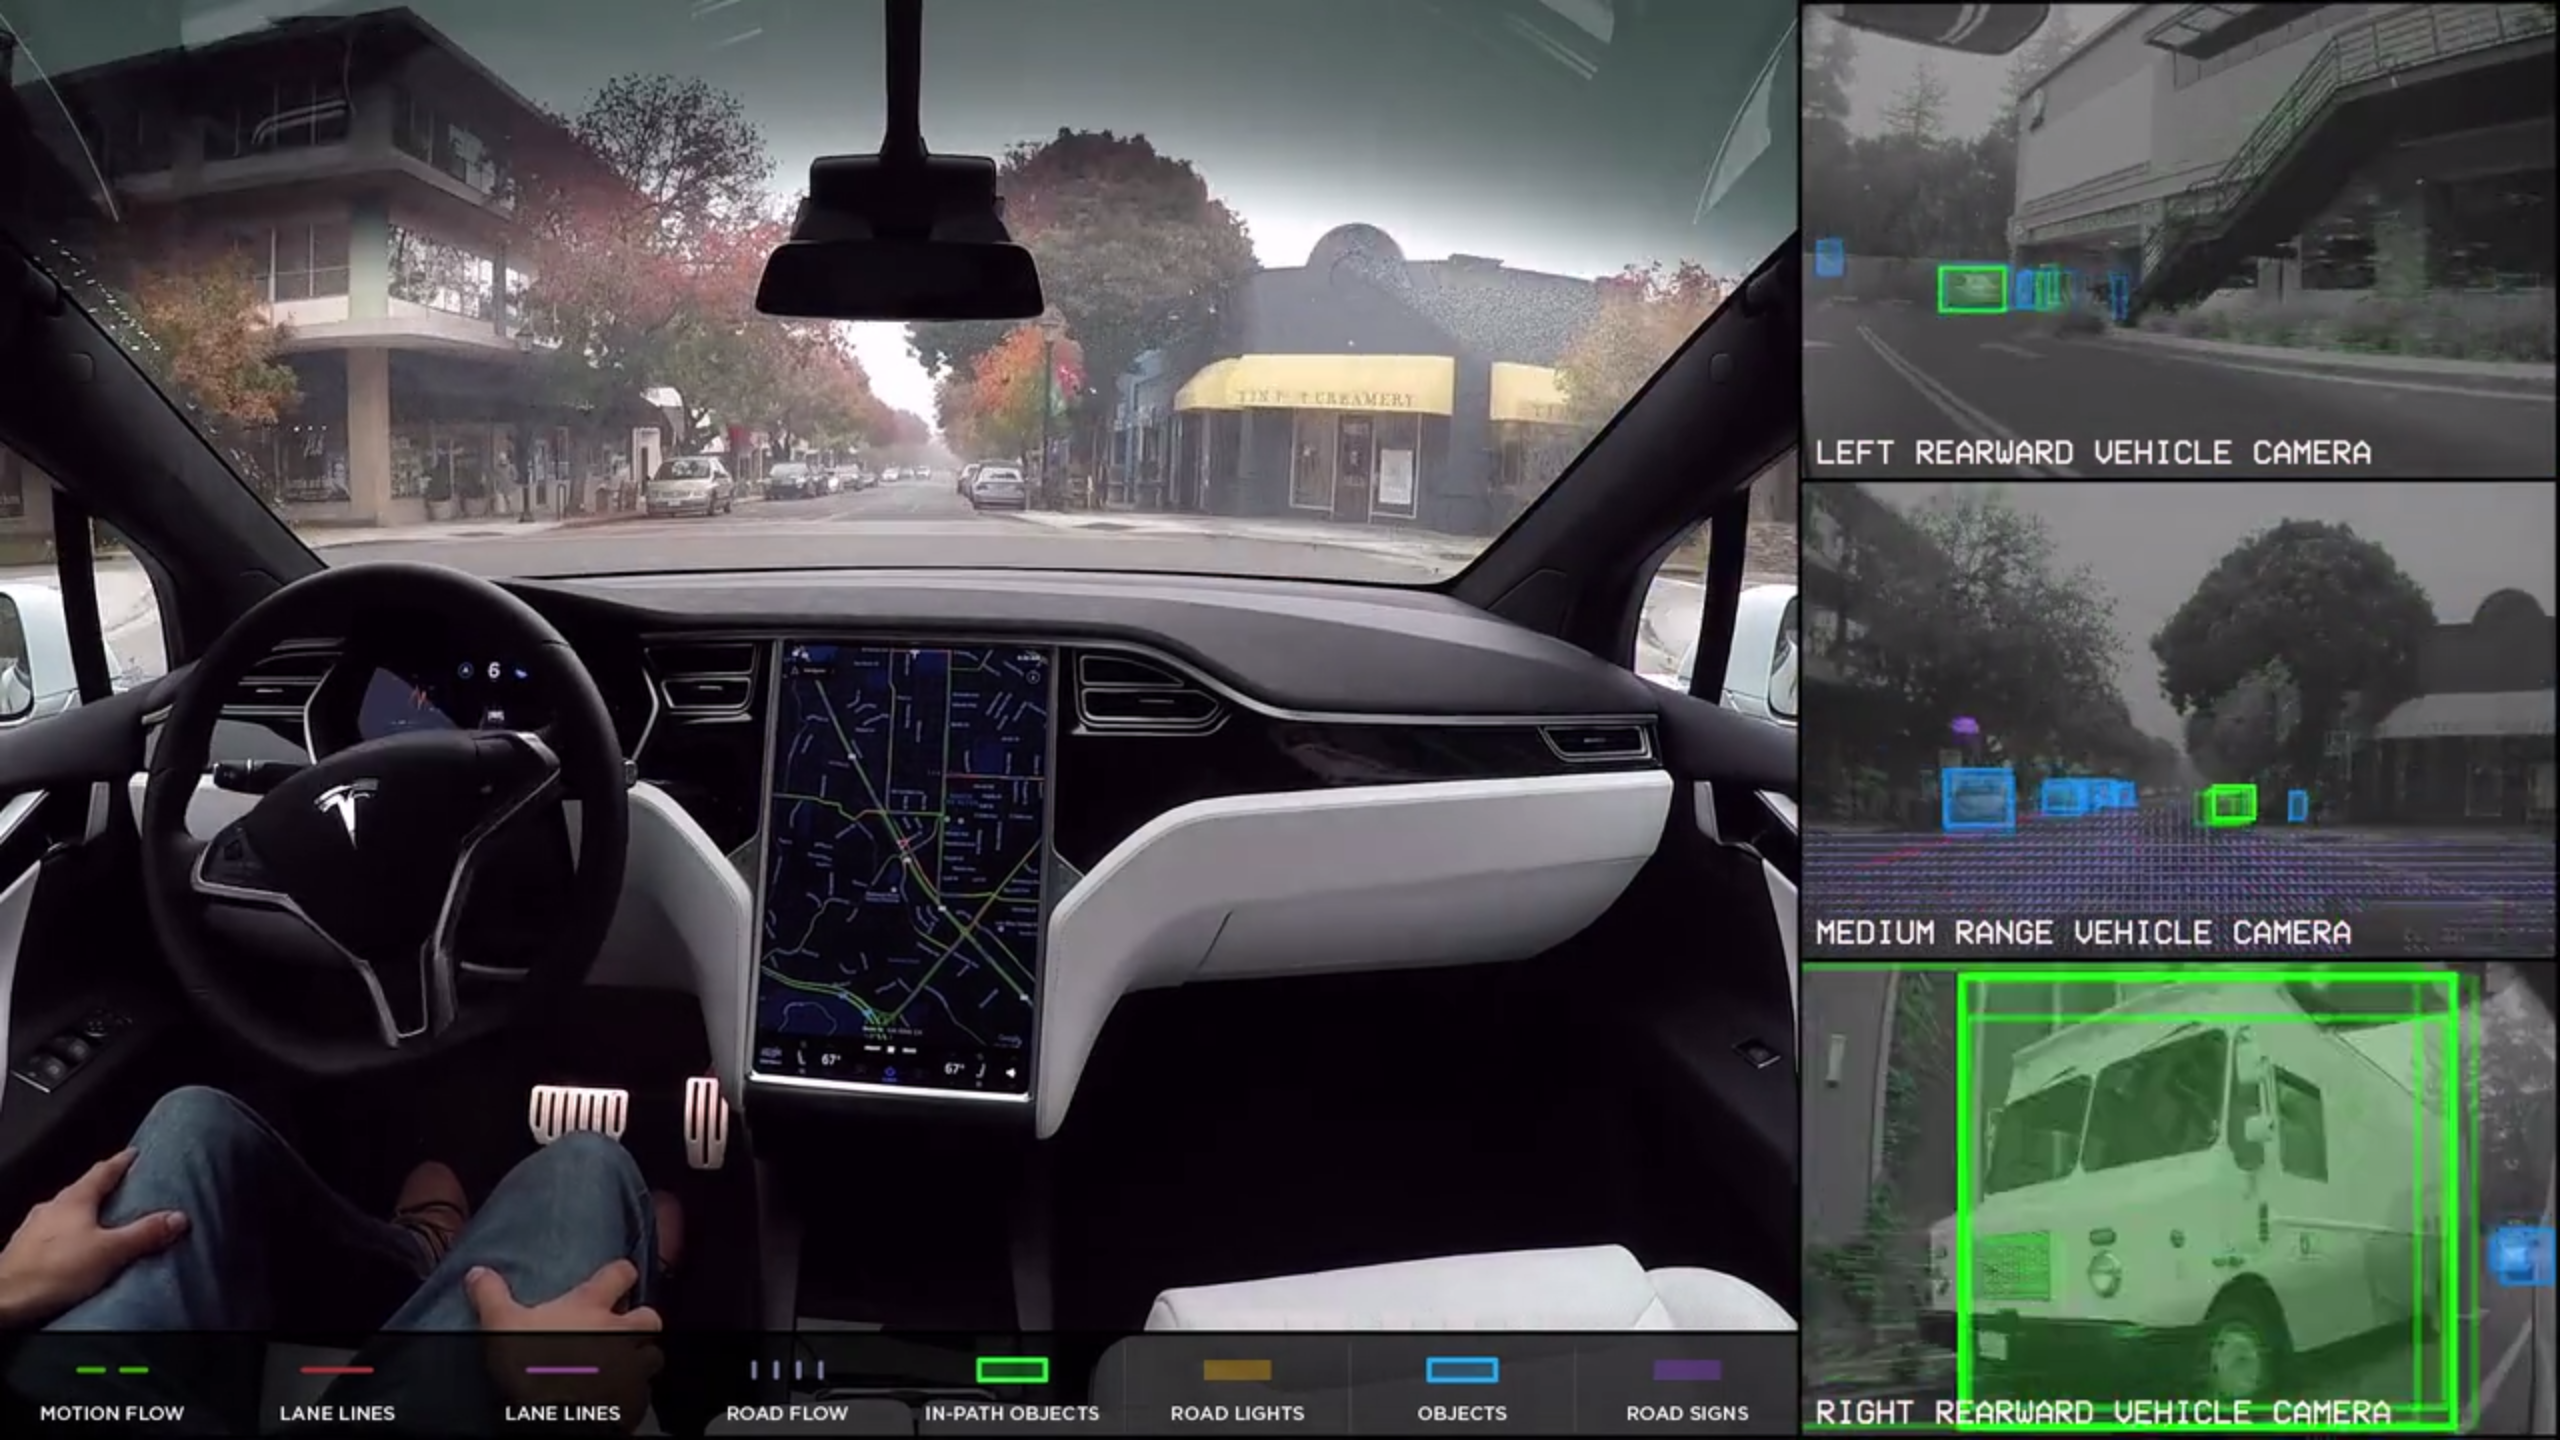 Here's How Tesla Wants To Move 'Enhanced Autopilot' To Fully Self-Driving Cars